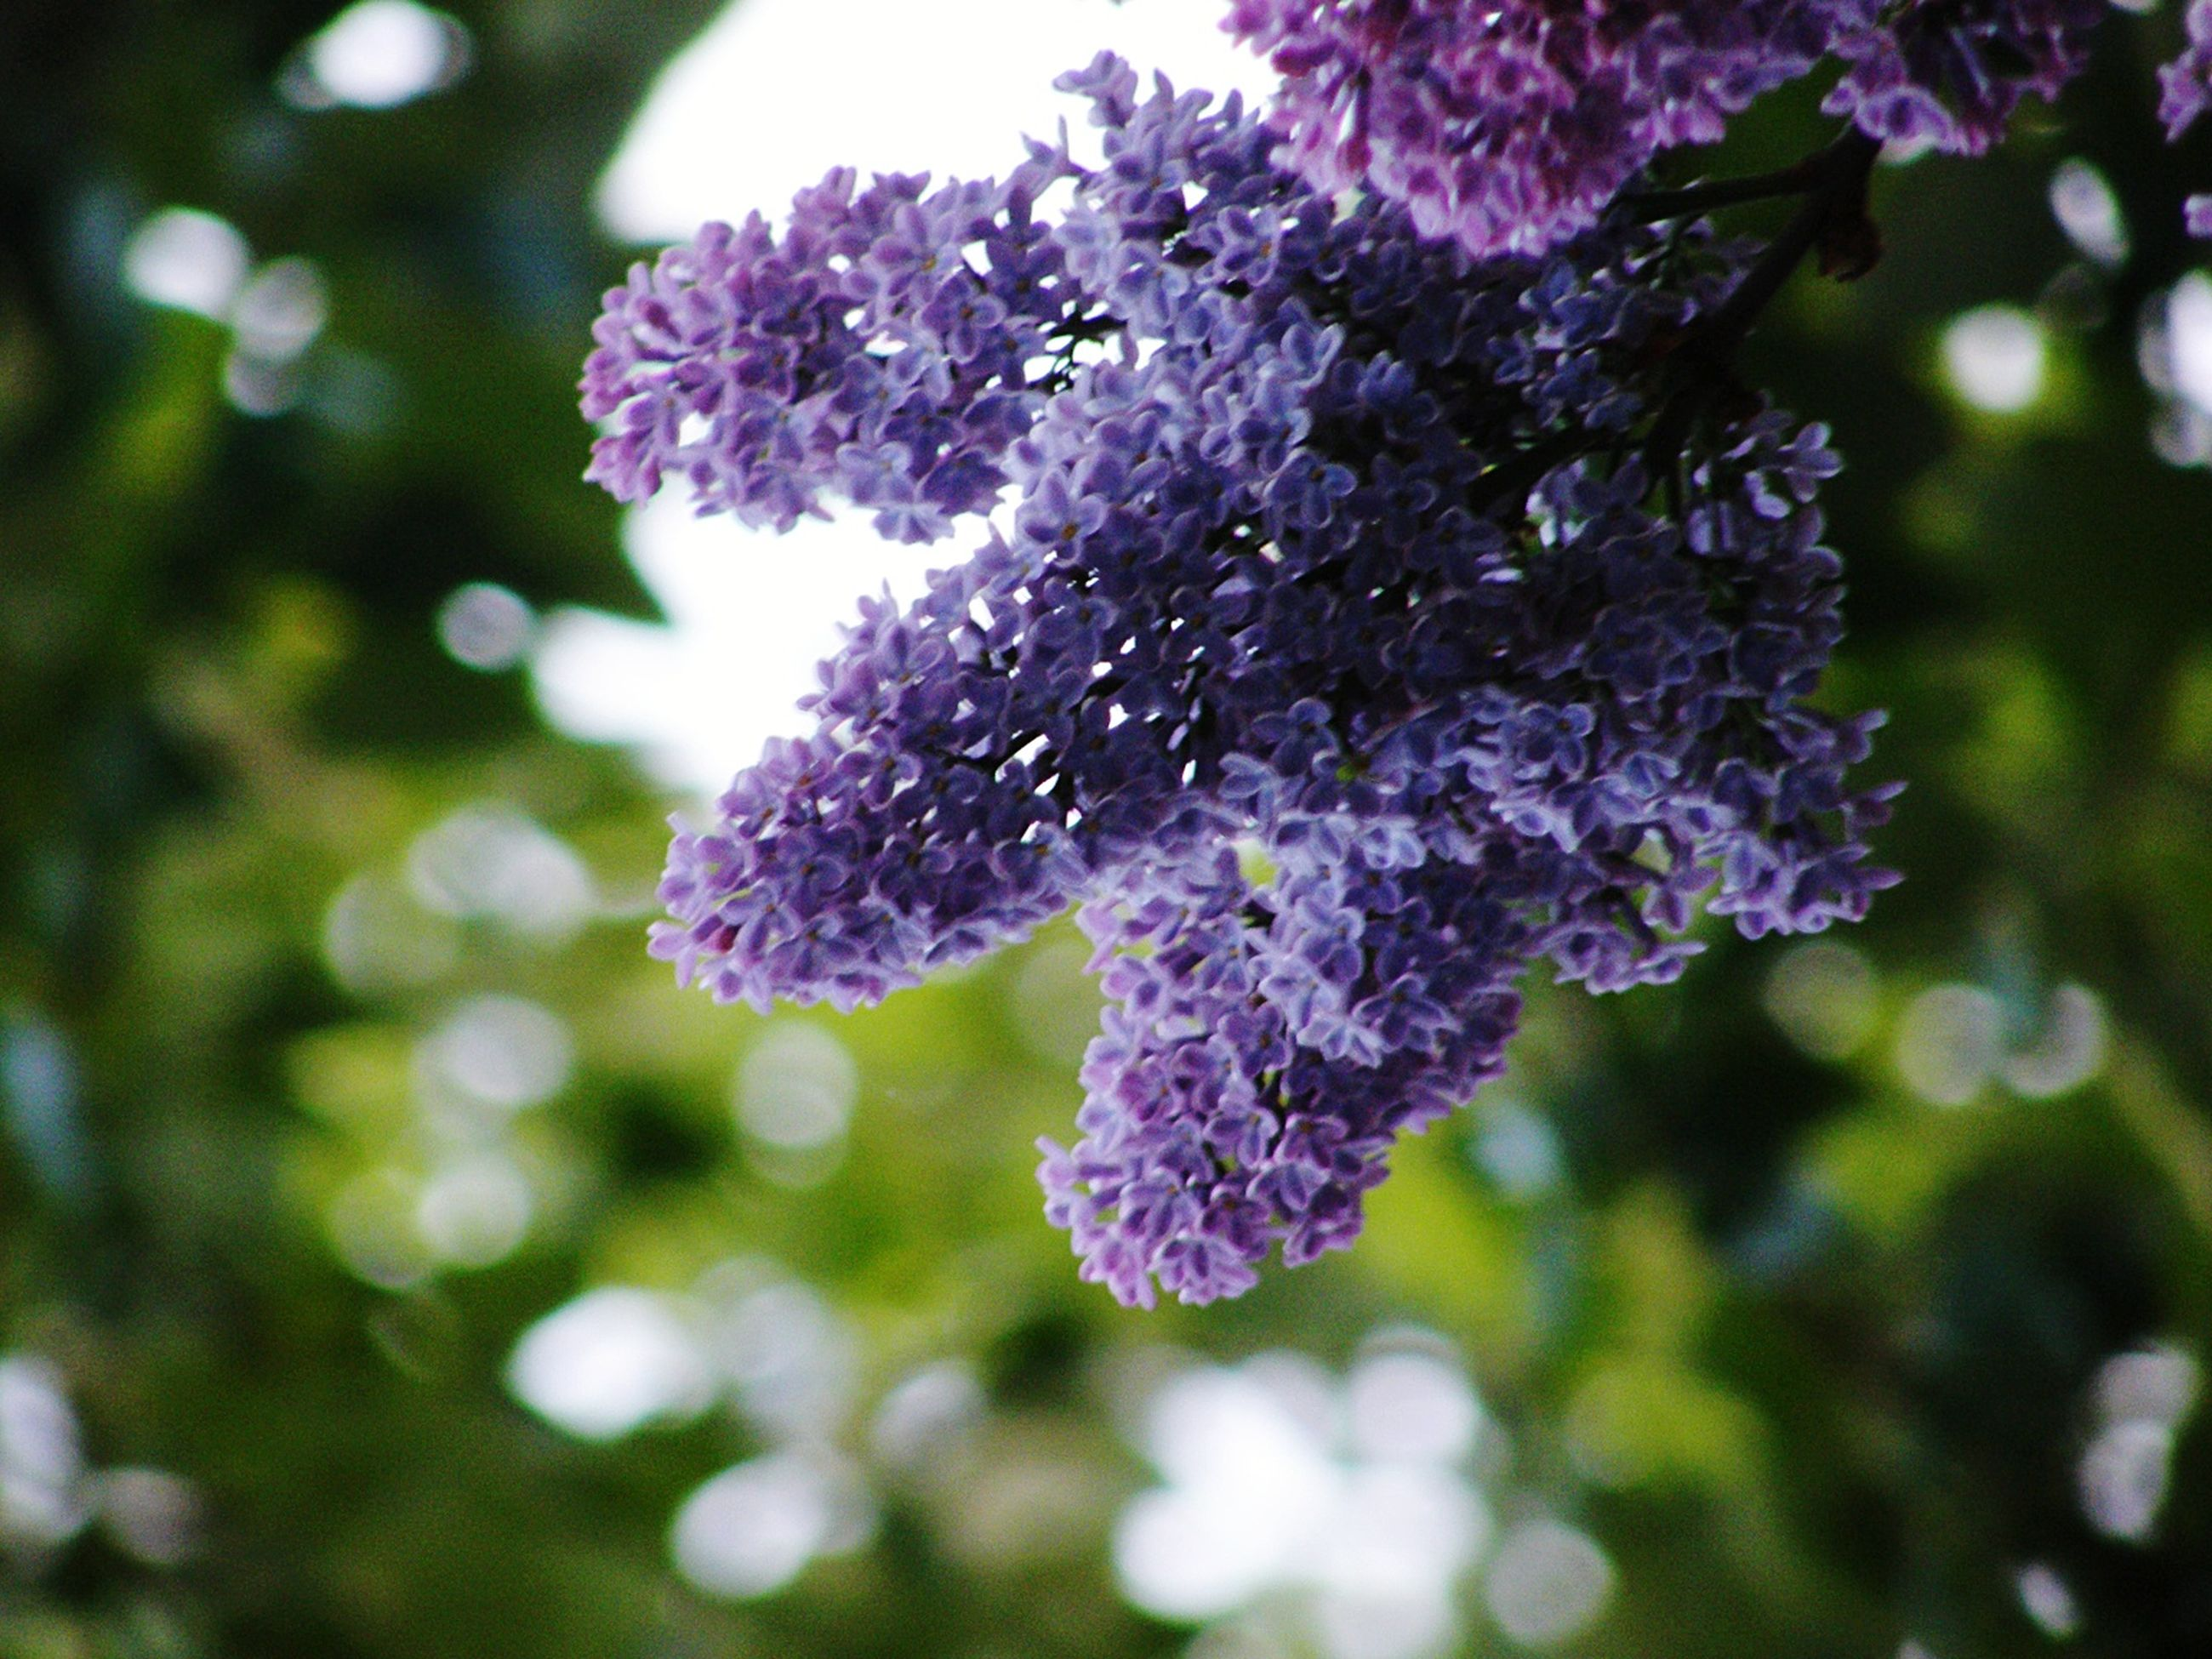 flower, purple, freshness, growth, fragility, beauty in nature, focus on foreground, close-up, nature, tree, blooming, petal, in bloom, branch, blossom, park - man made space, flower head, pink color, plant, day